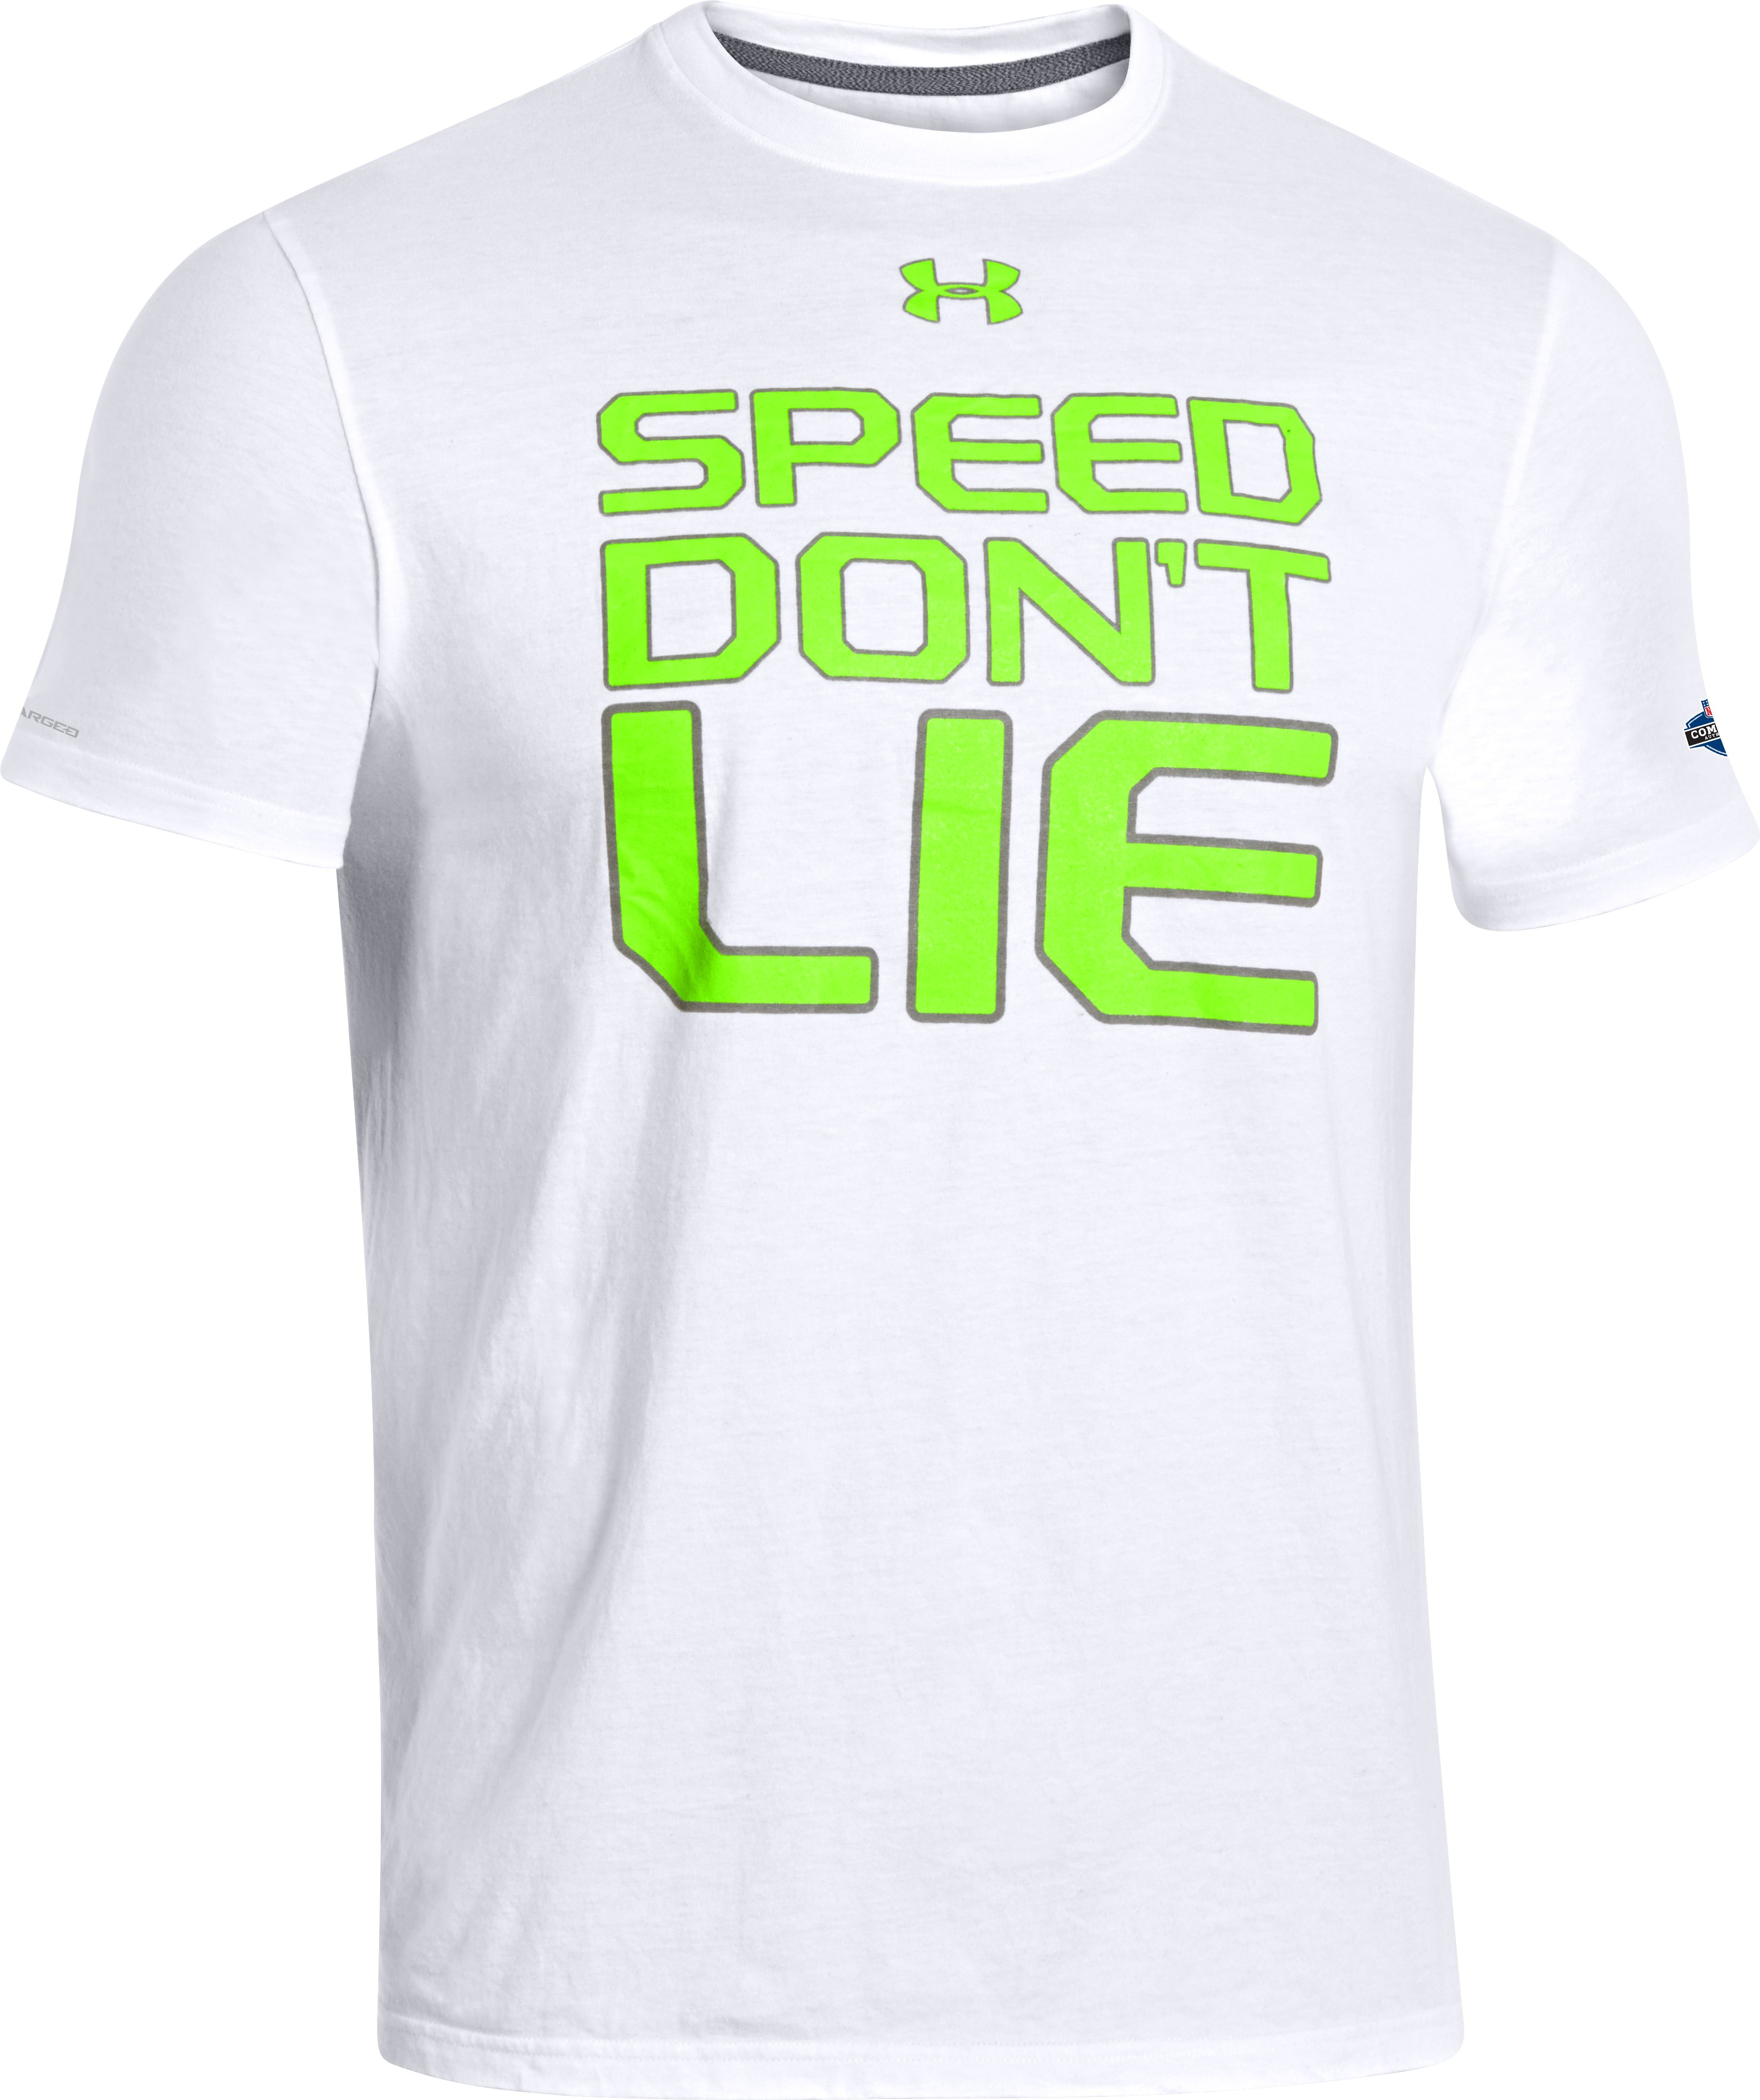 Men's NFL Combine Authentic Speed T-Shirt, White